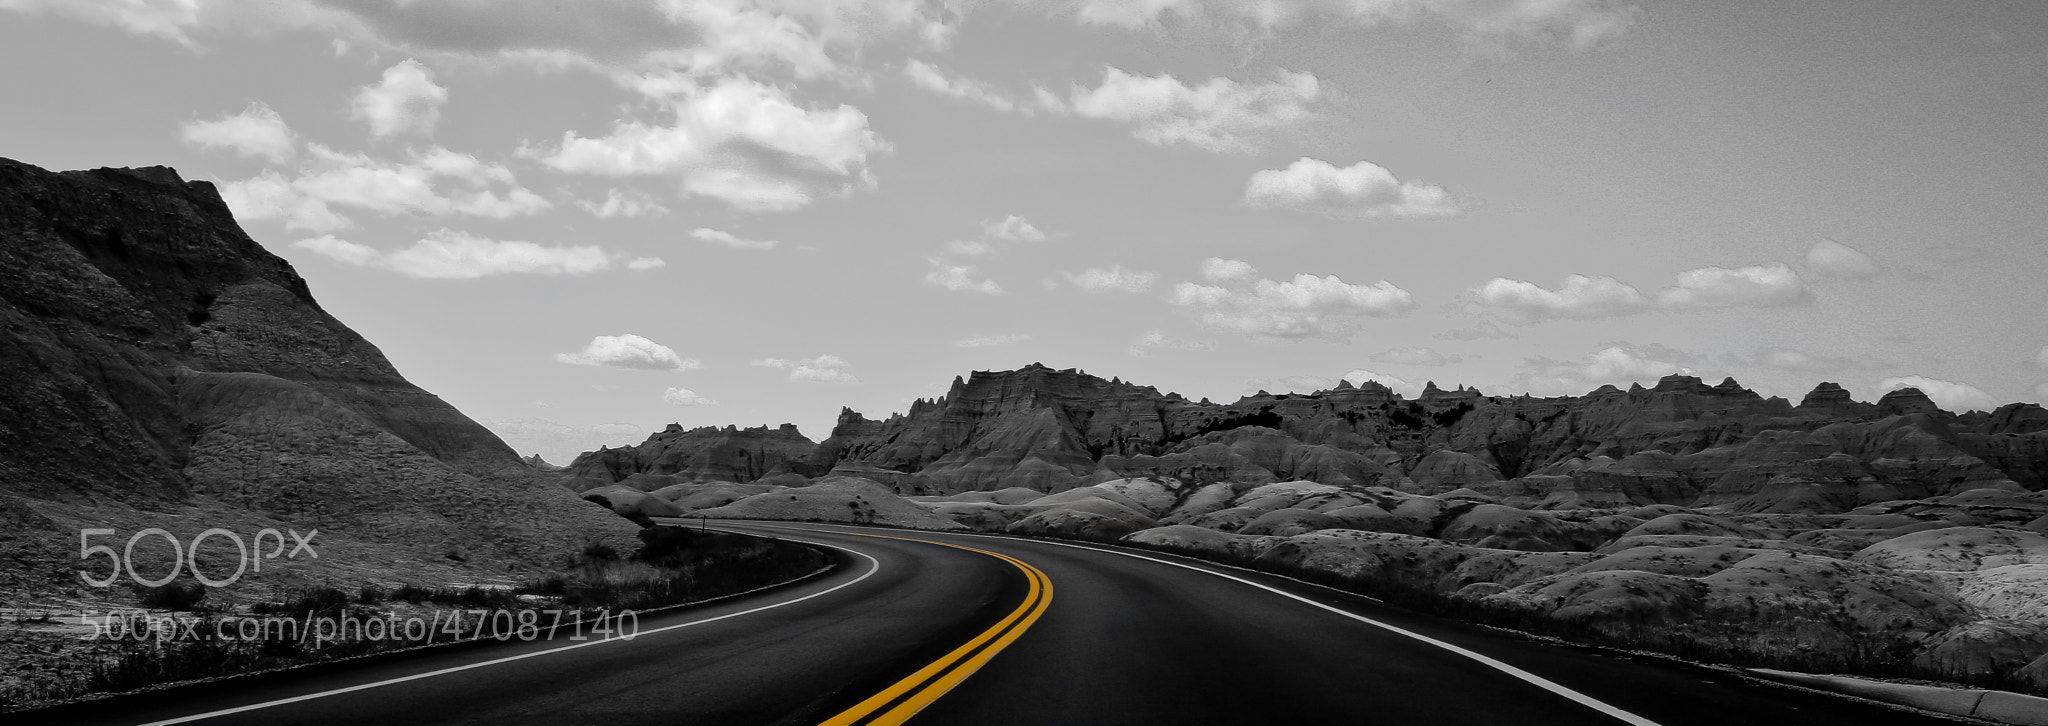 Photograph 2 Lane Blacktop by Cory Feggestad on 500px